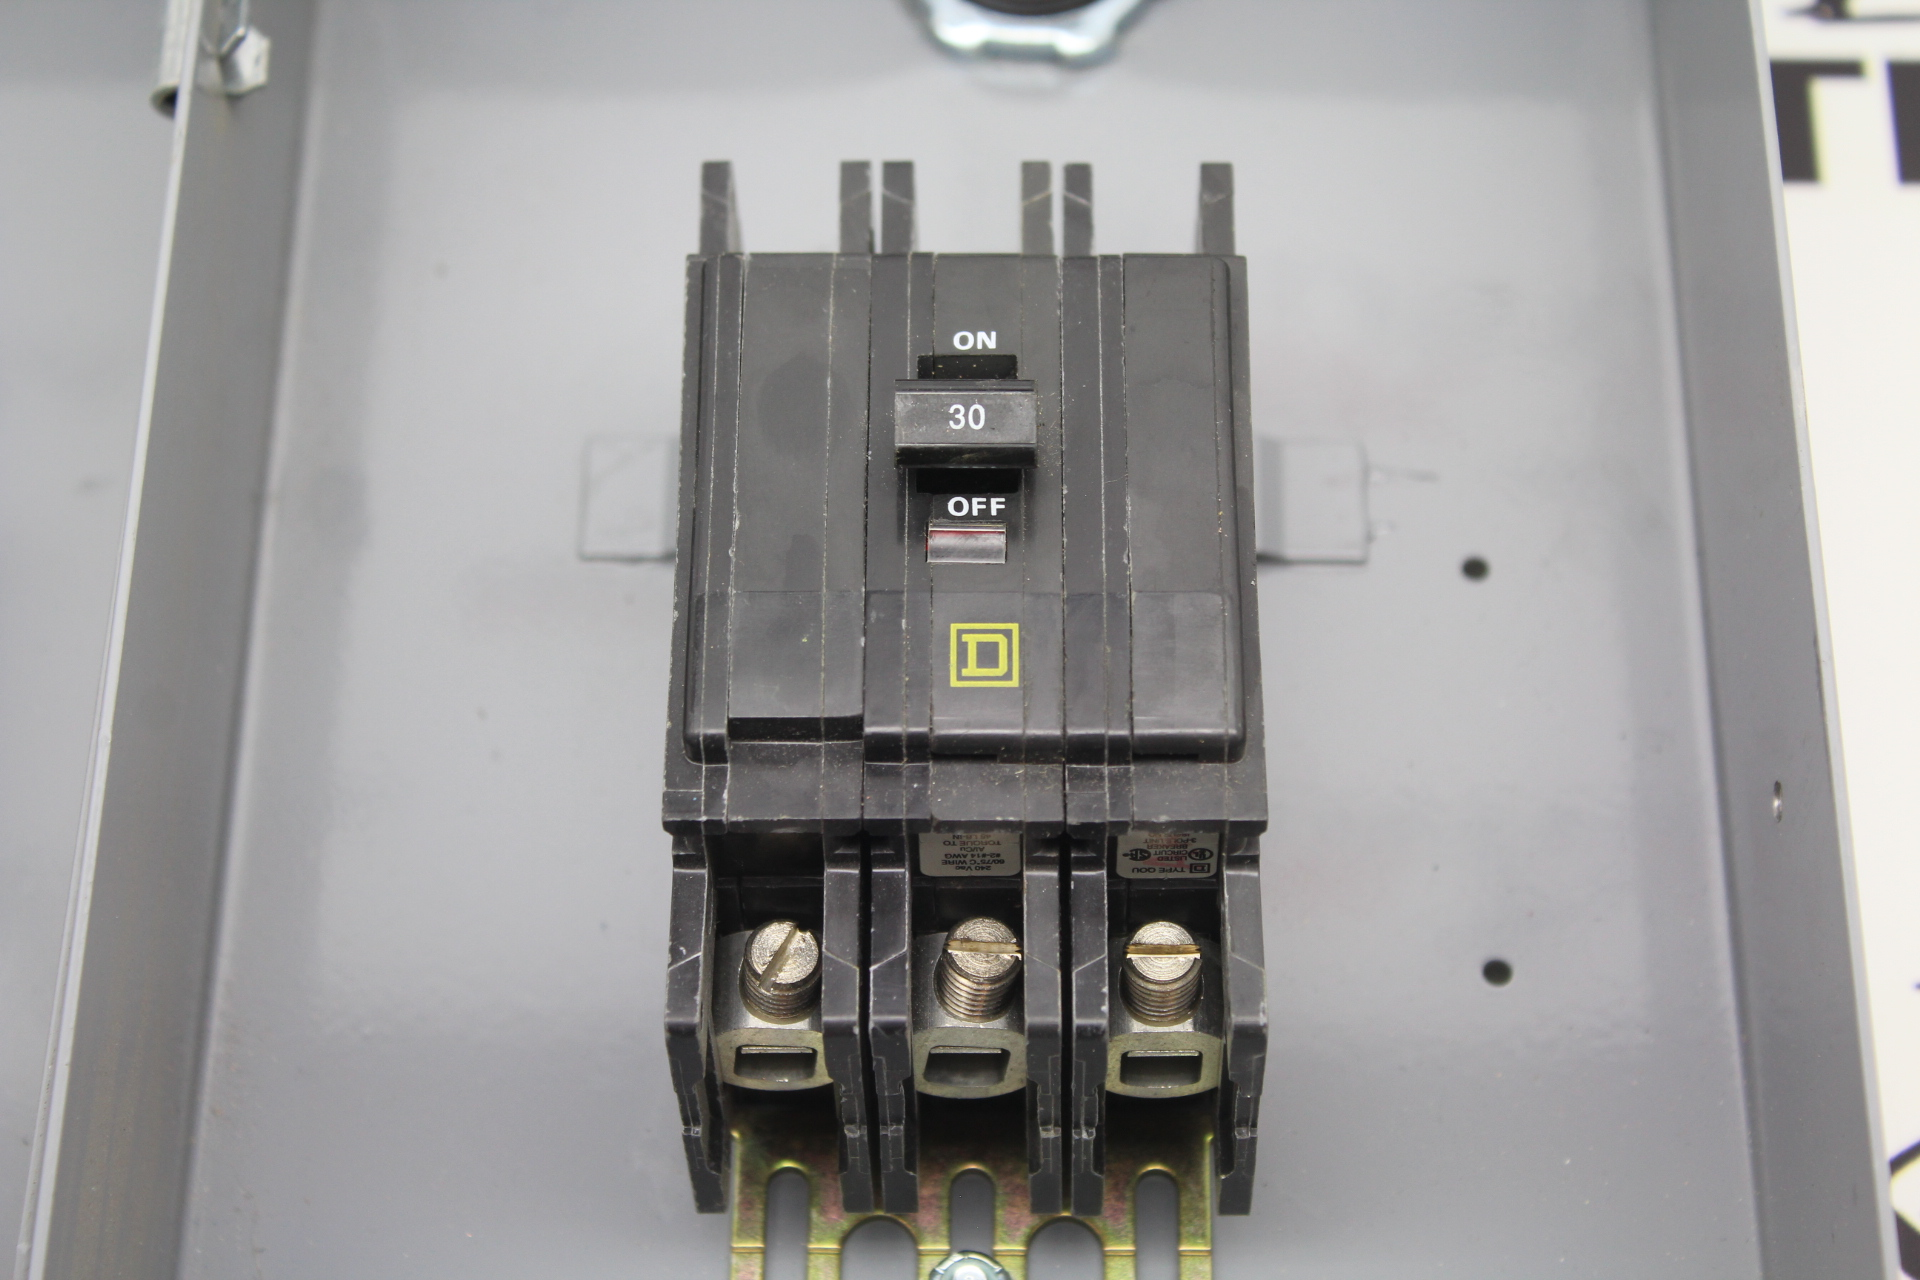 hight resolution of square d fuse box doors wiring diagram name square d fuse box doors wiring diagram list